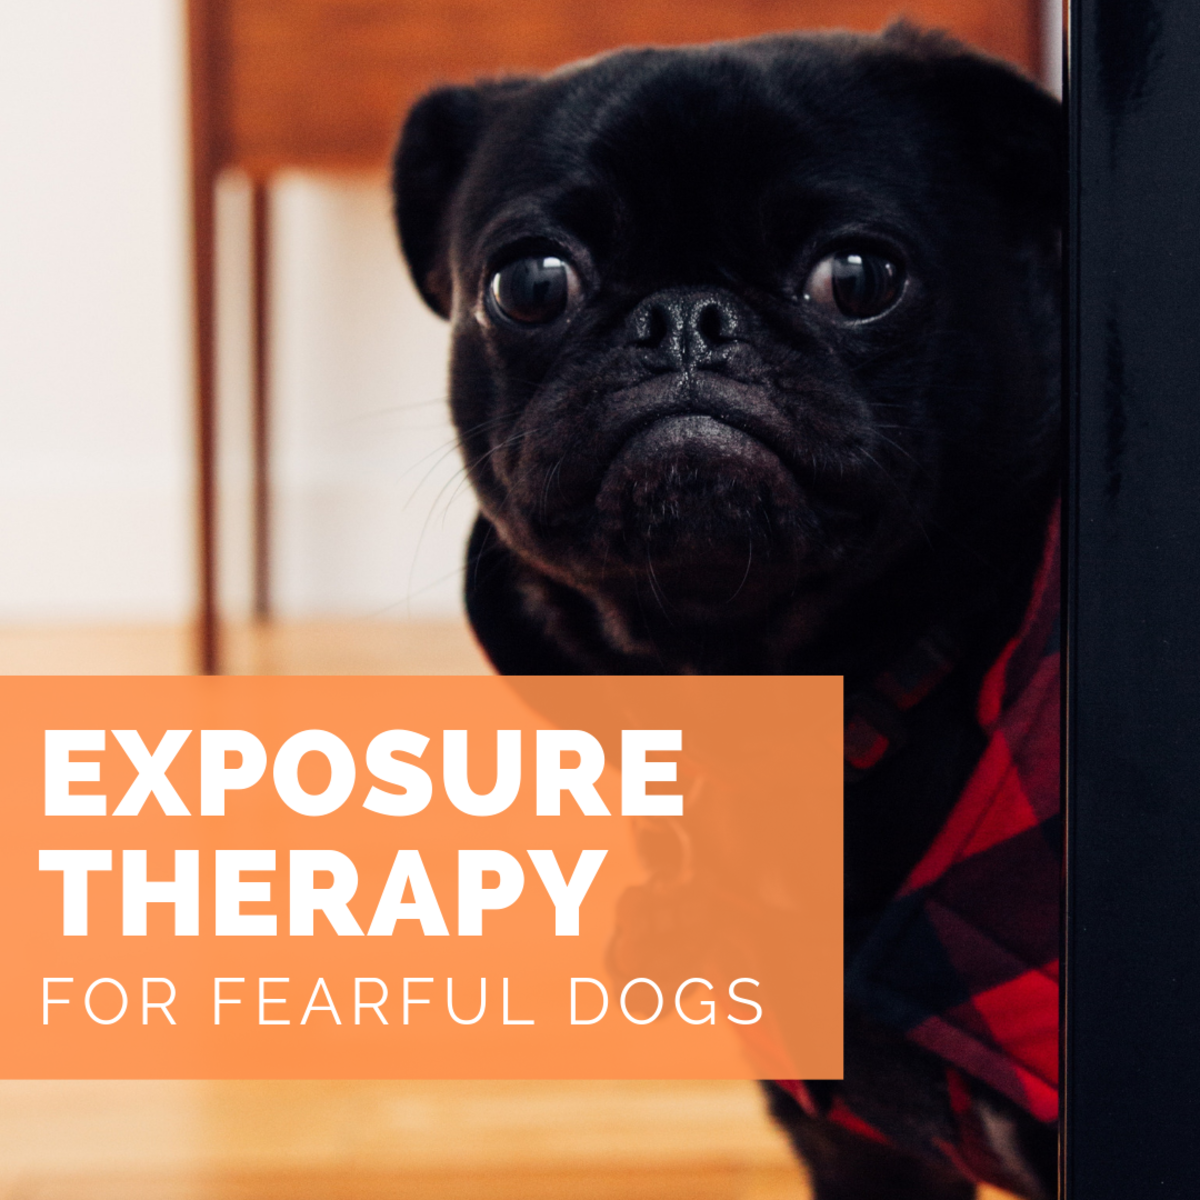 Exposure therapy is commonly used to mitigate human fears and phobias, but did you know it is used with dogs as well?